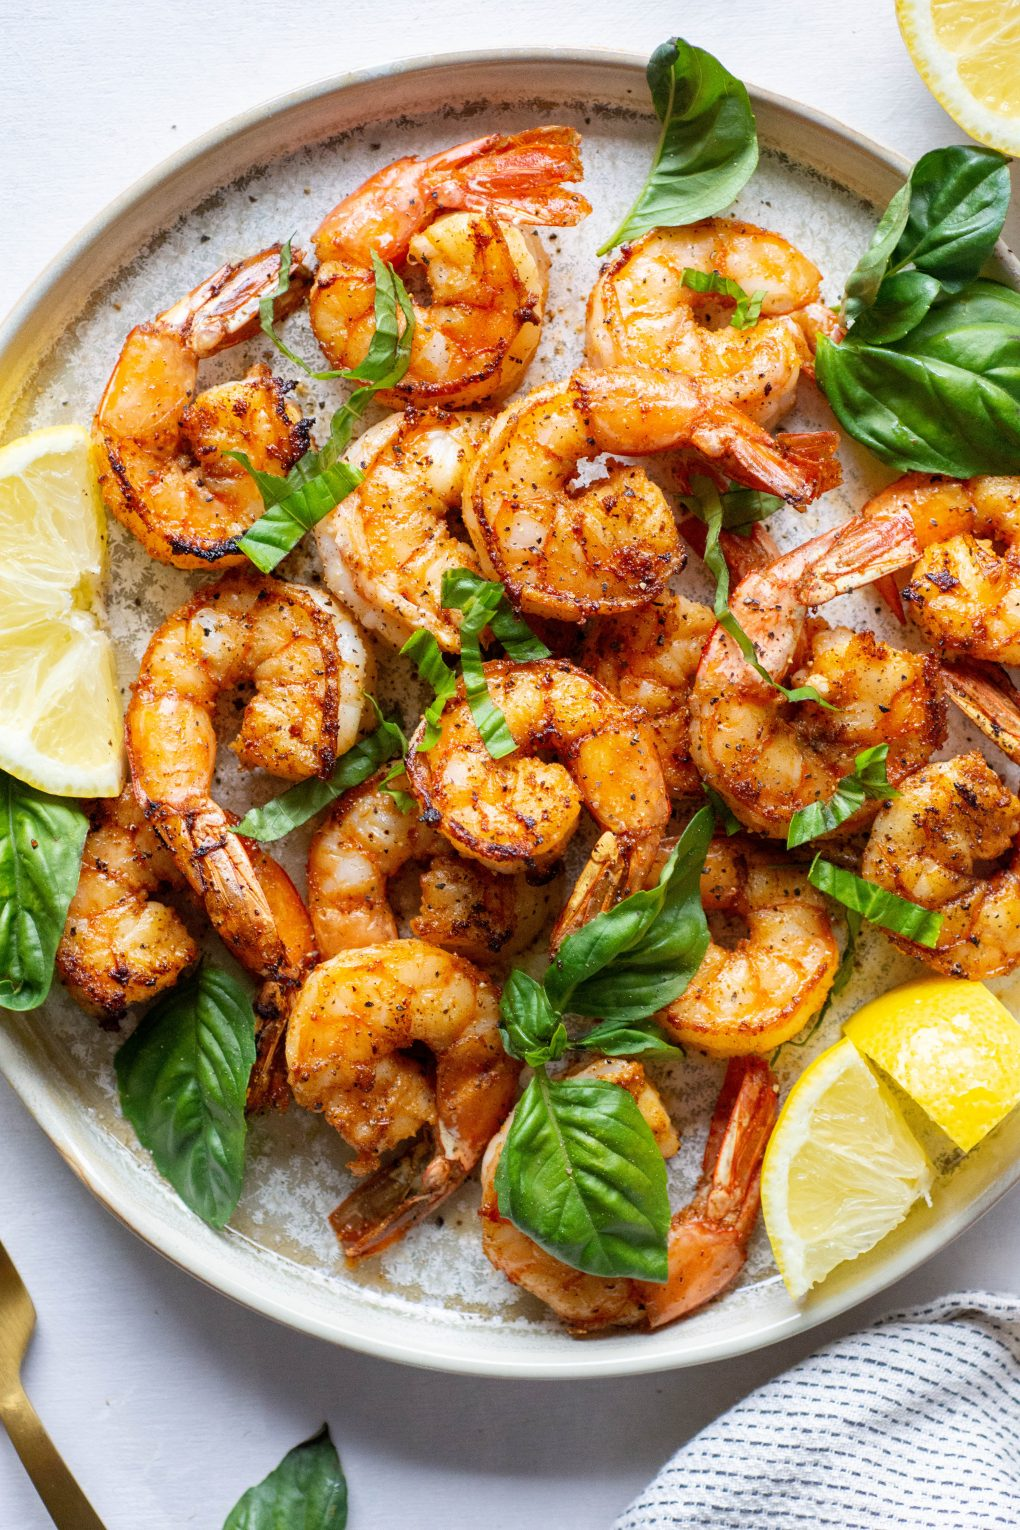 Plate of seared shrimp topped with fresh basil and lemon wedges on a light background